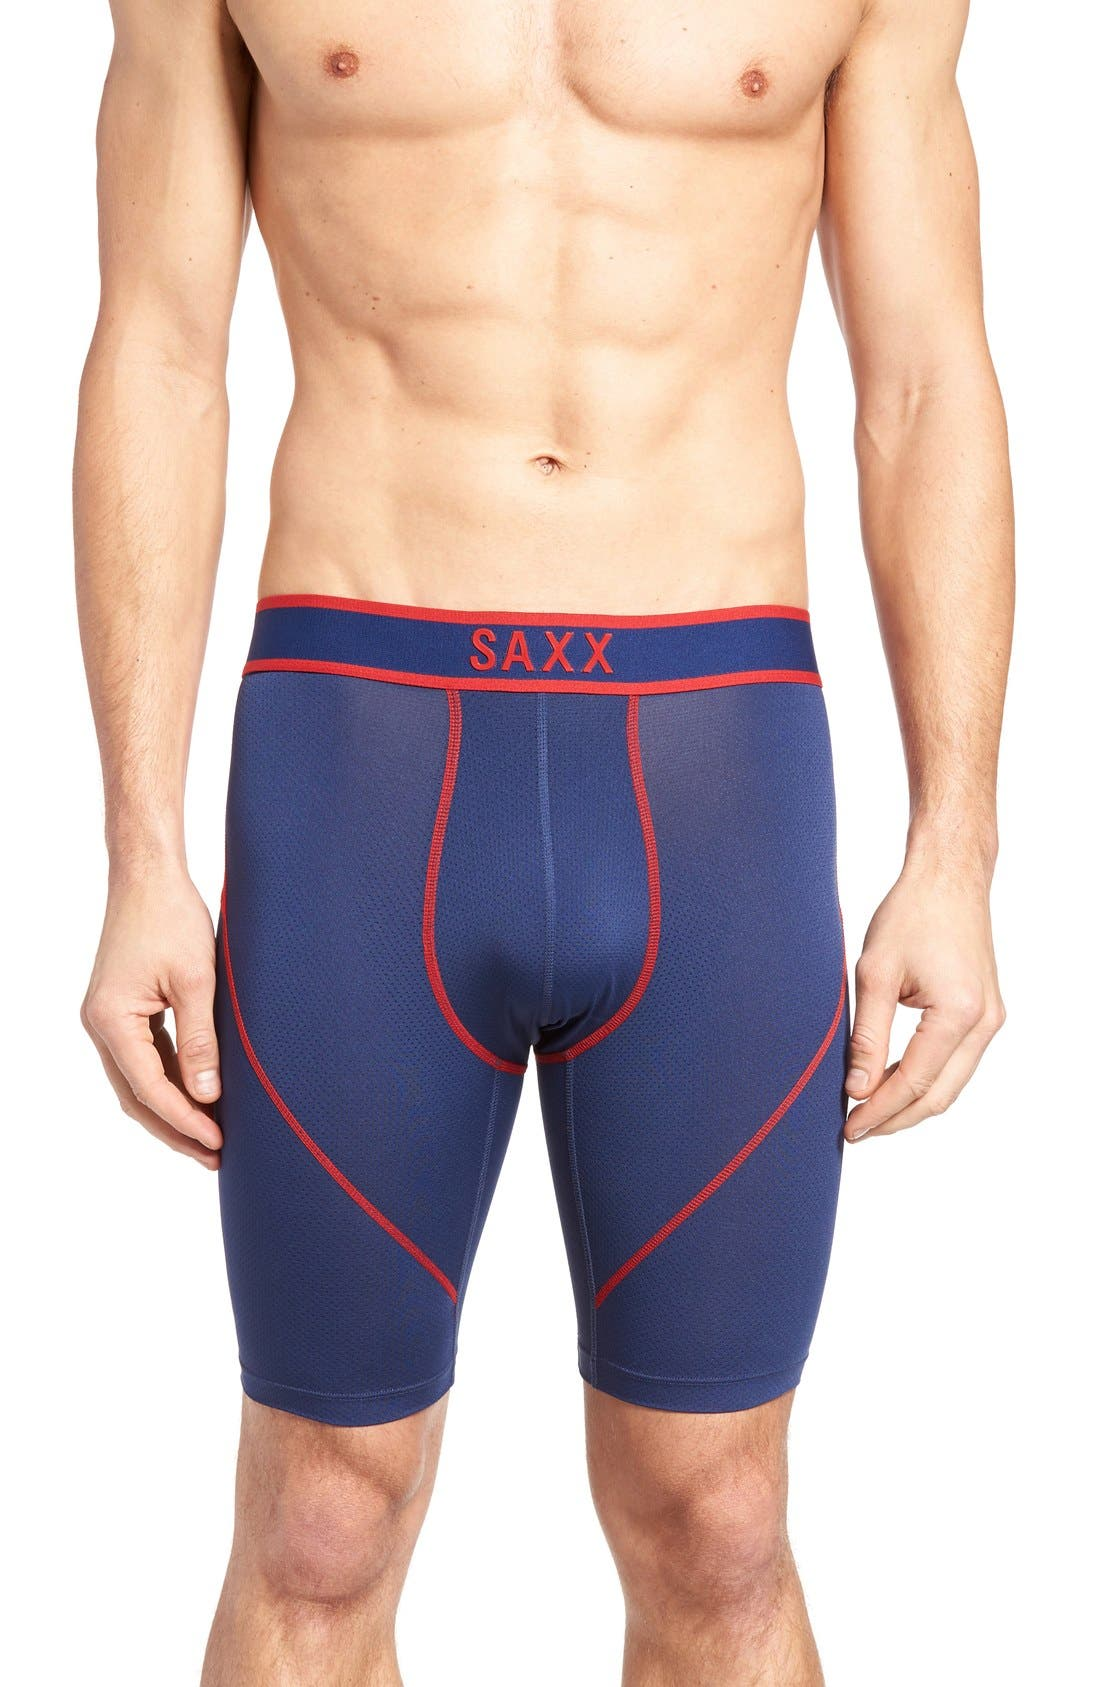 SAXX 'Kinetic' Stretch Boxer Briefs